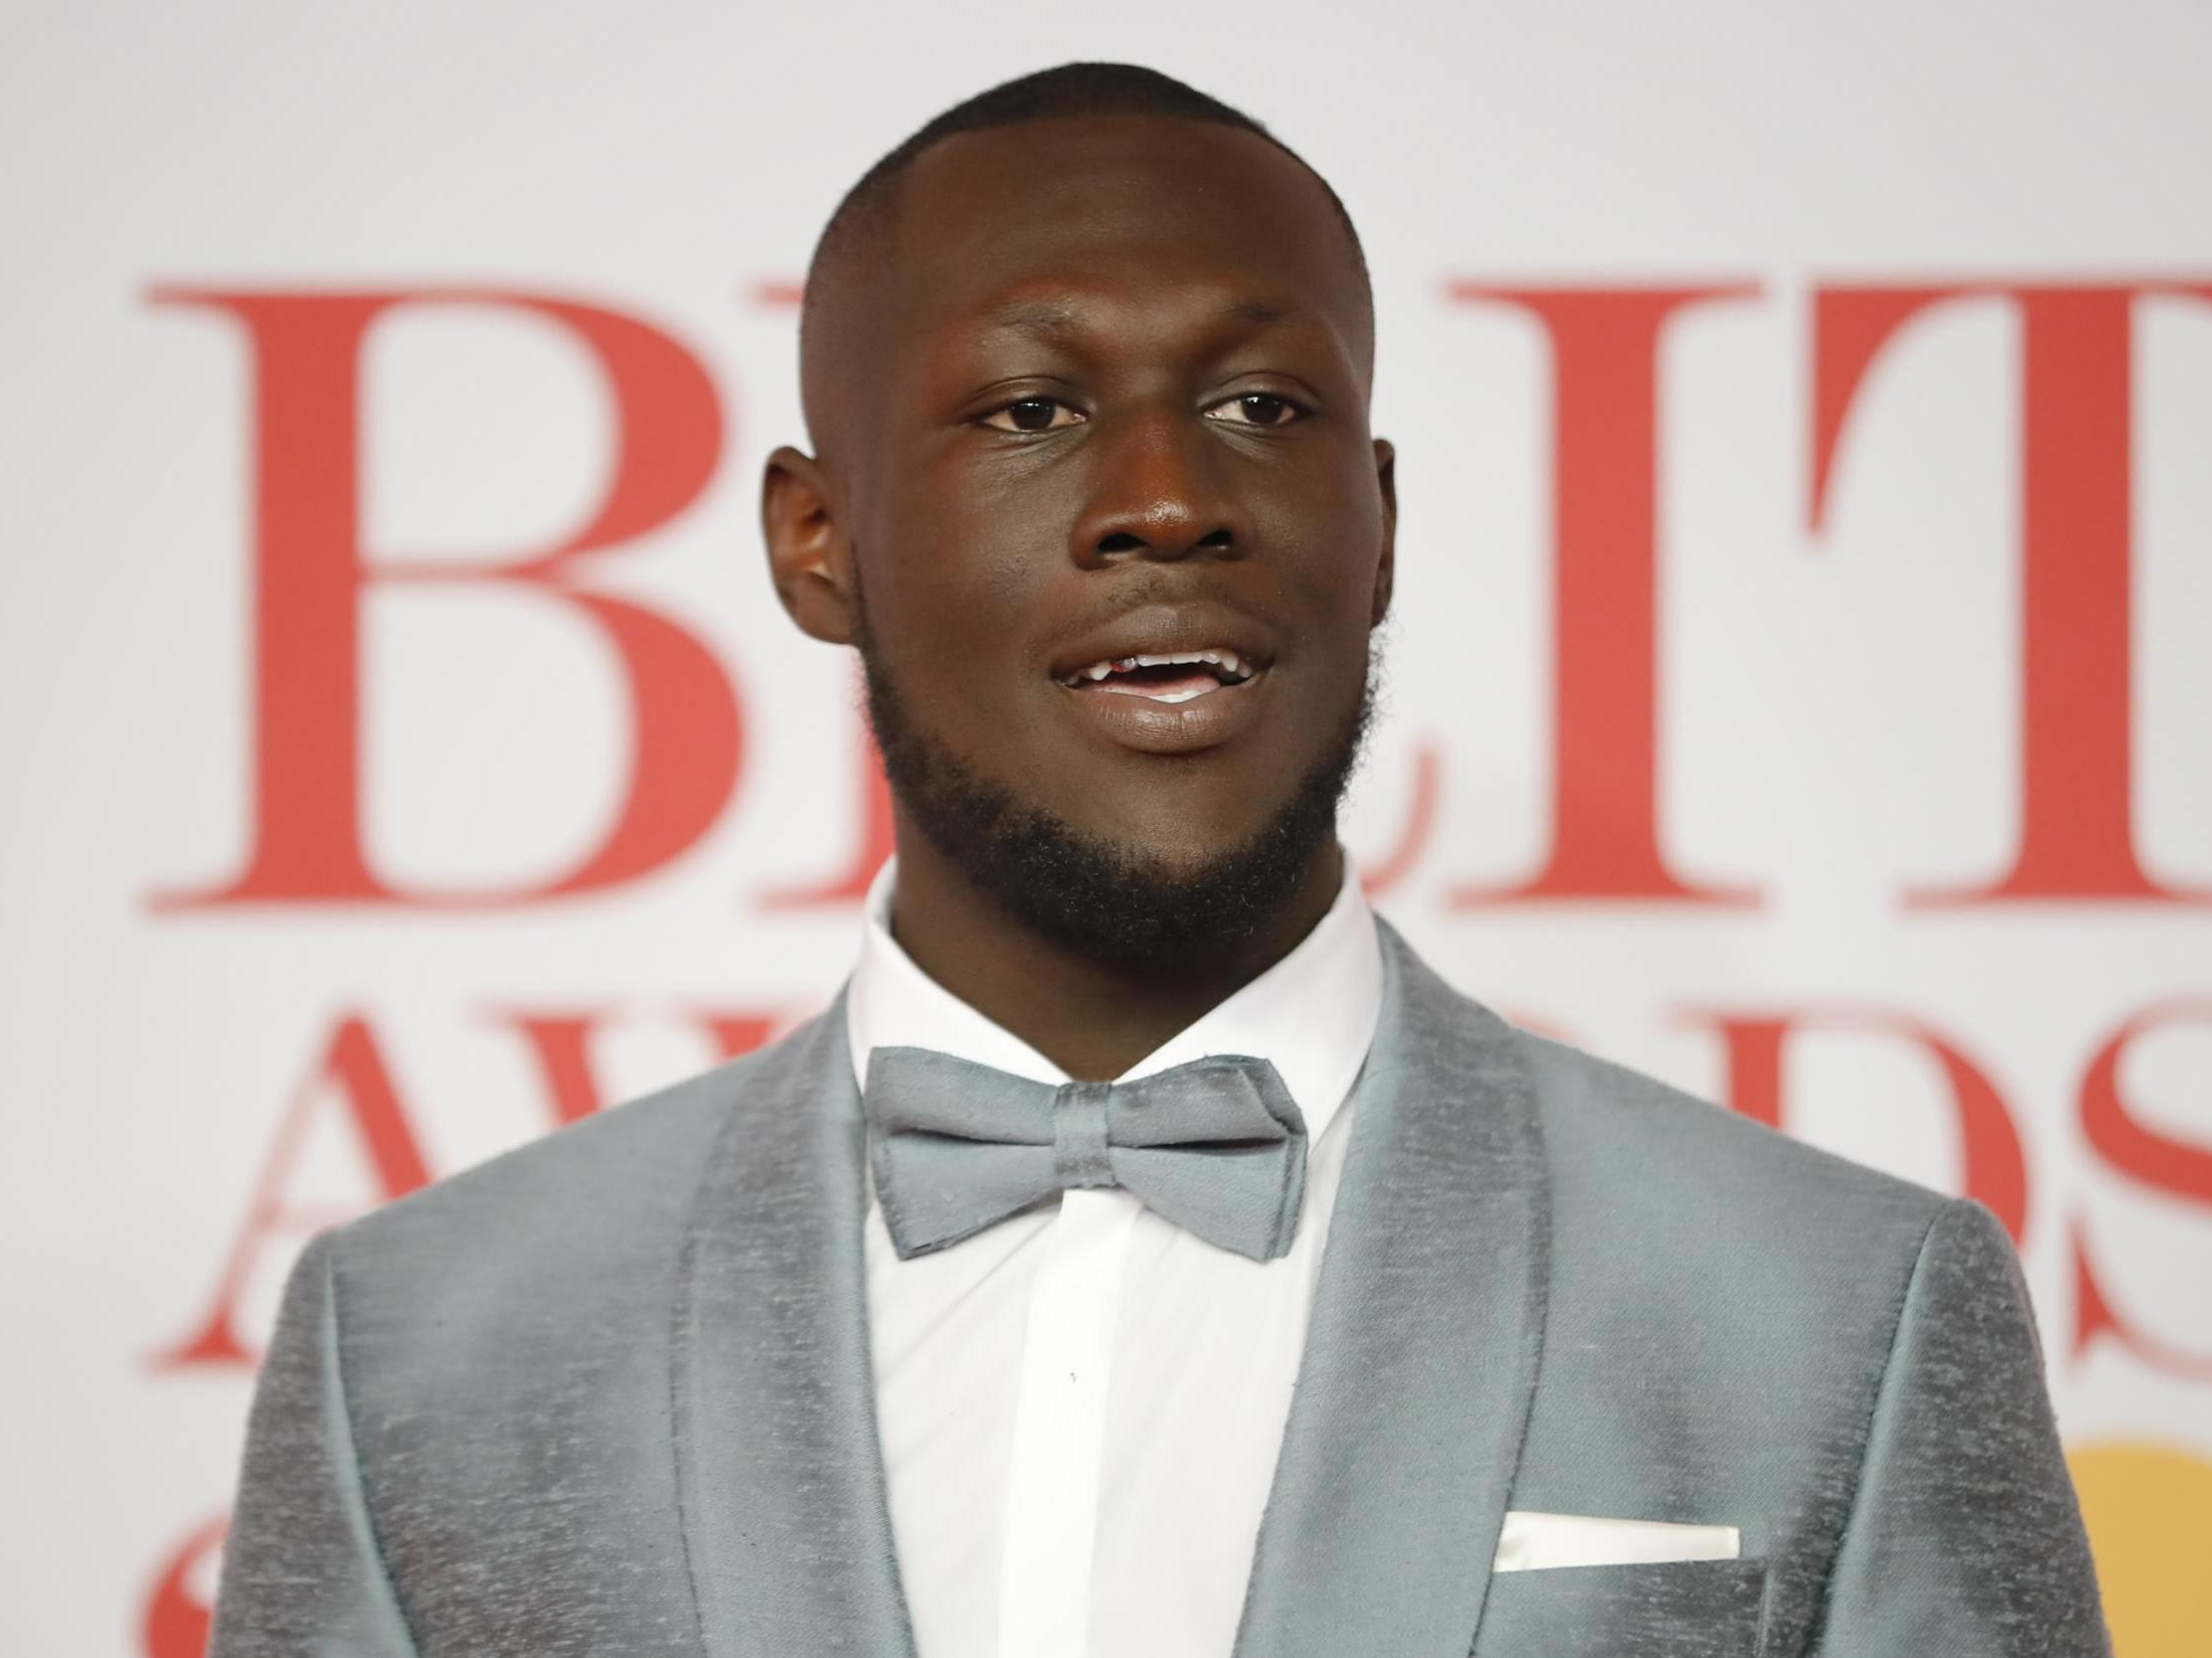 Stormzy speaks out on Black Lives Matter: 'If we weren't oppressed, we wouldn't be shouting'